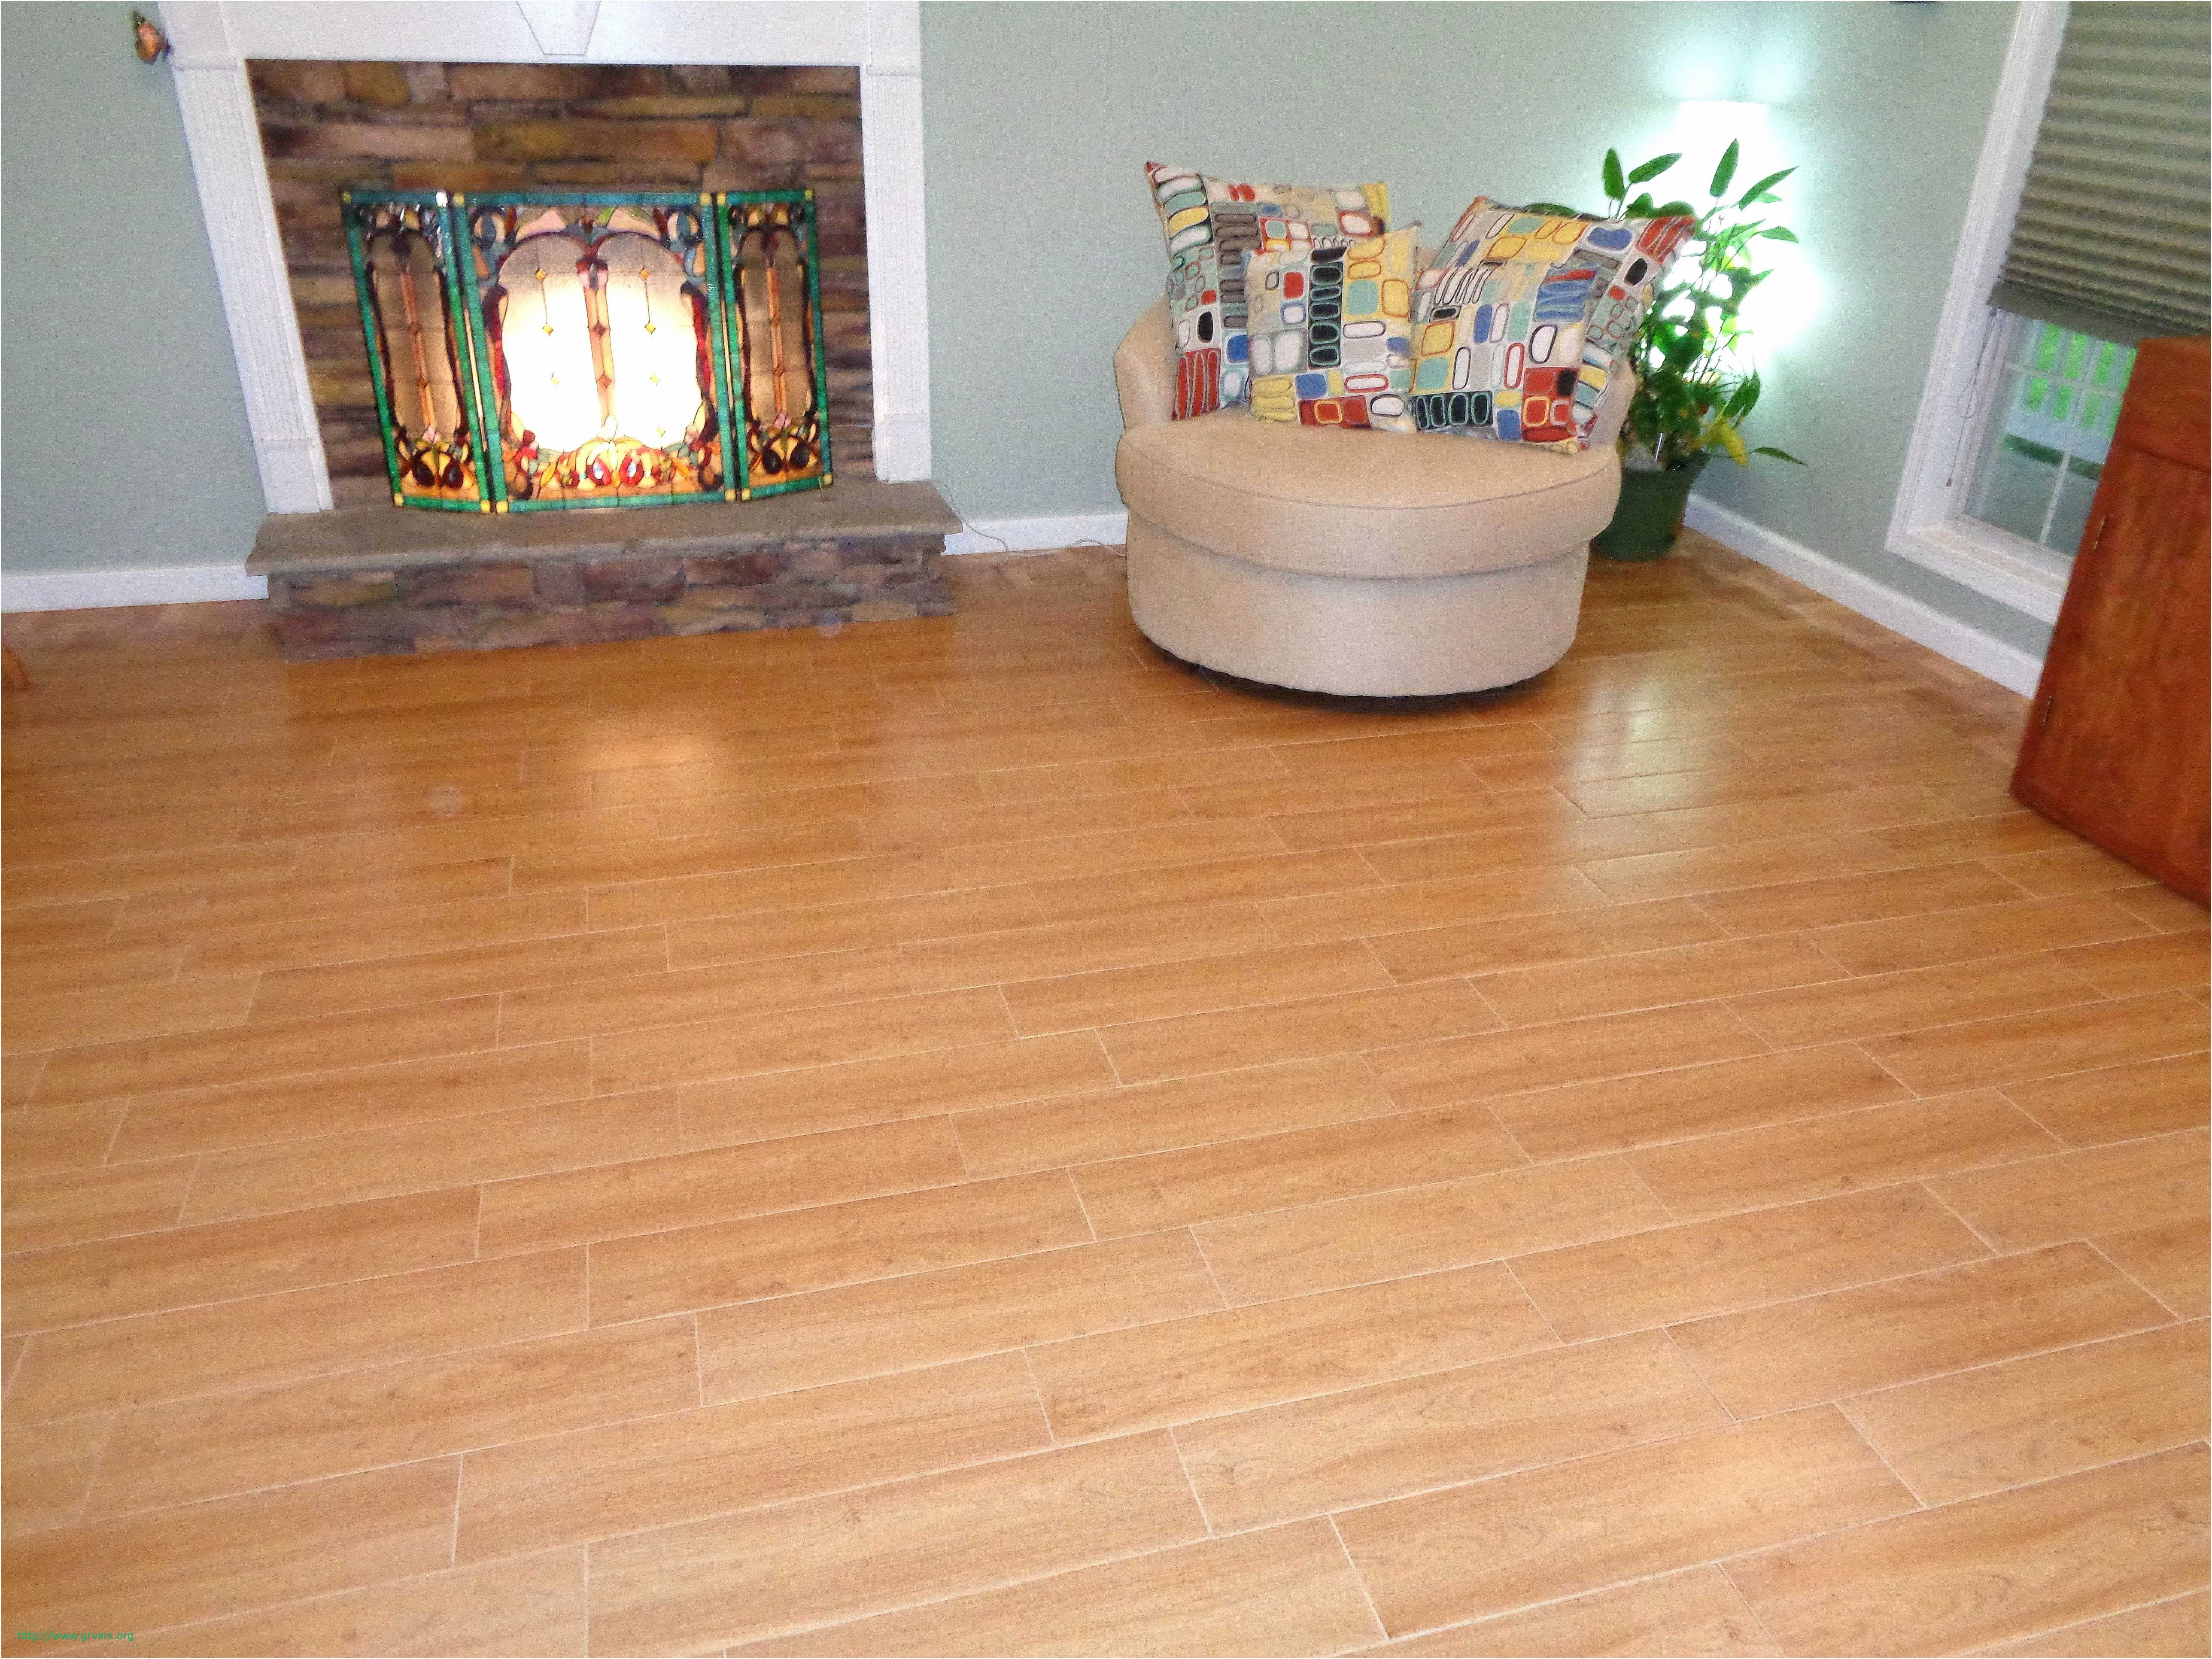 hardwood floor refinishing nashville of brazilian hardwood floor dahuacctvth com inside brazilian hardwood floor